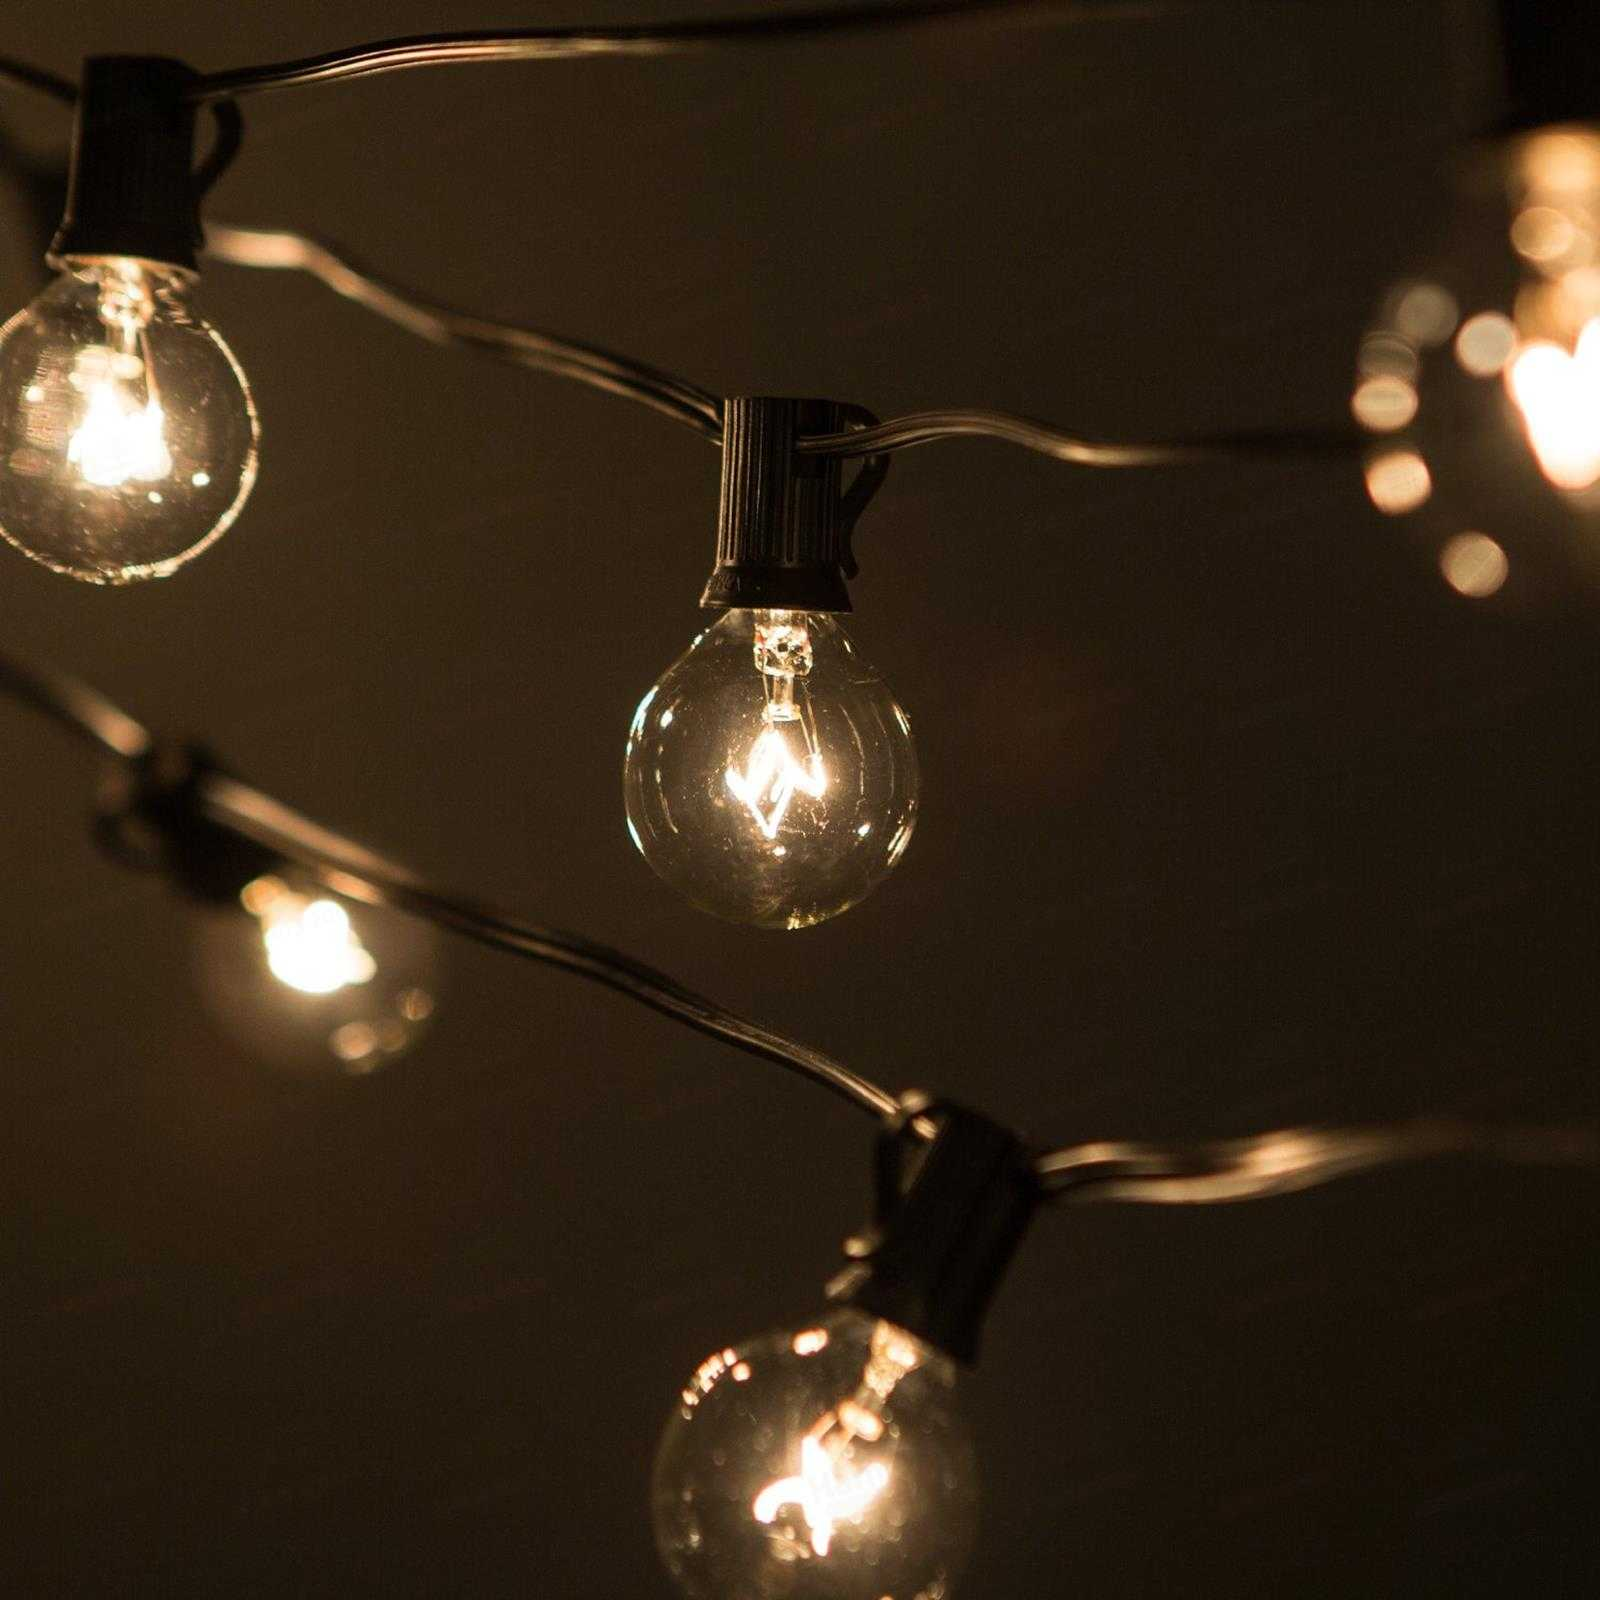 10 benefits of Big bulb outdoor string lights